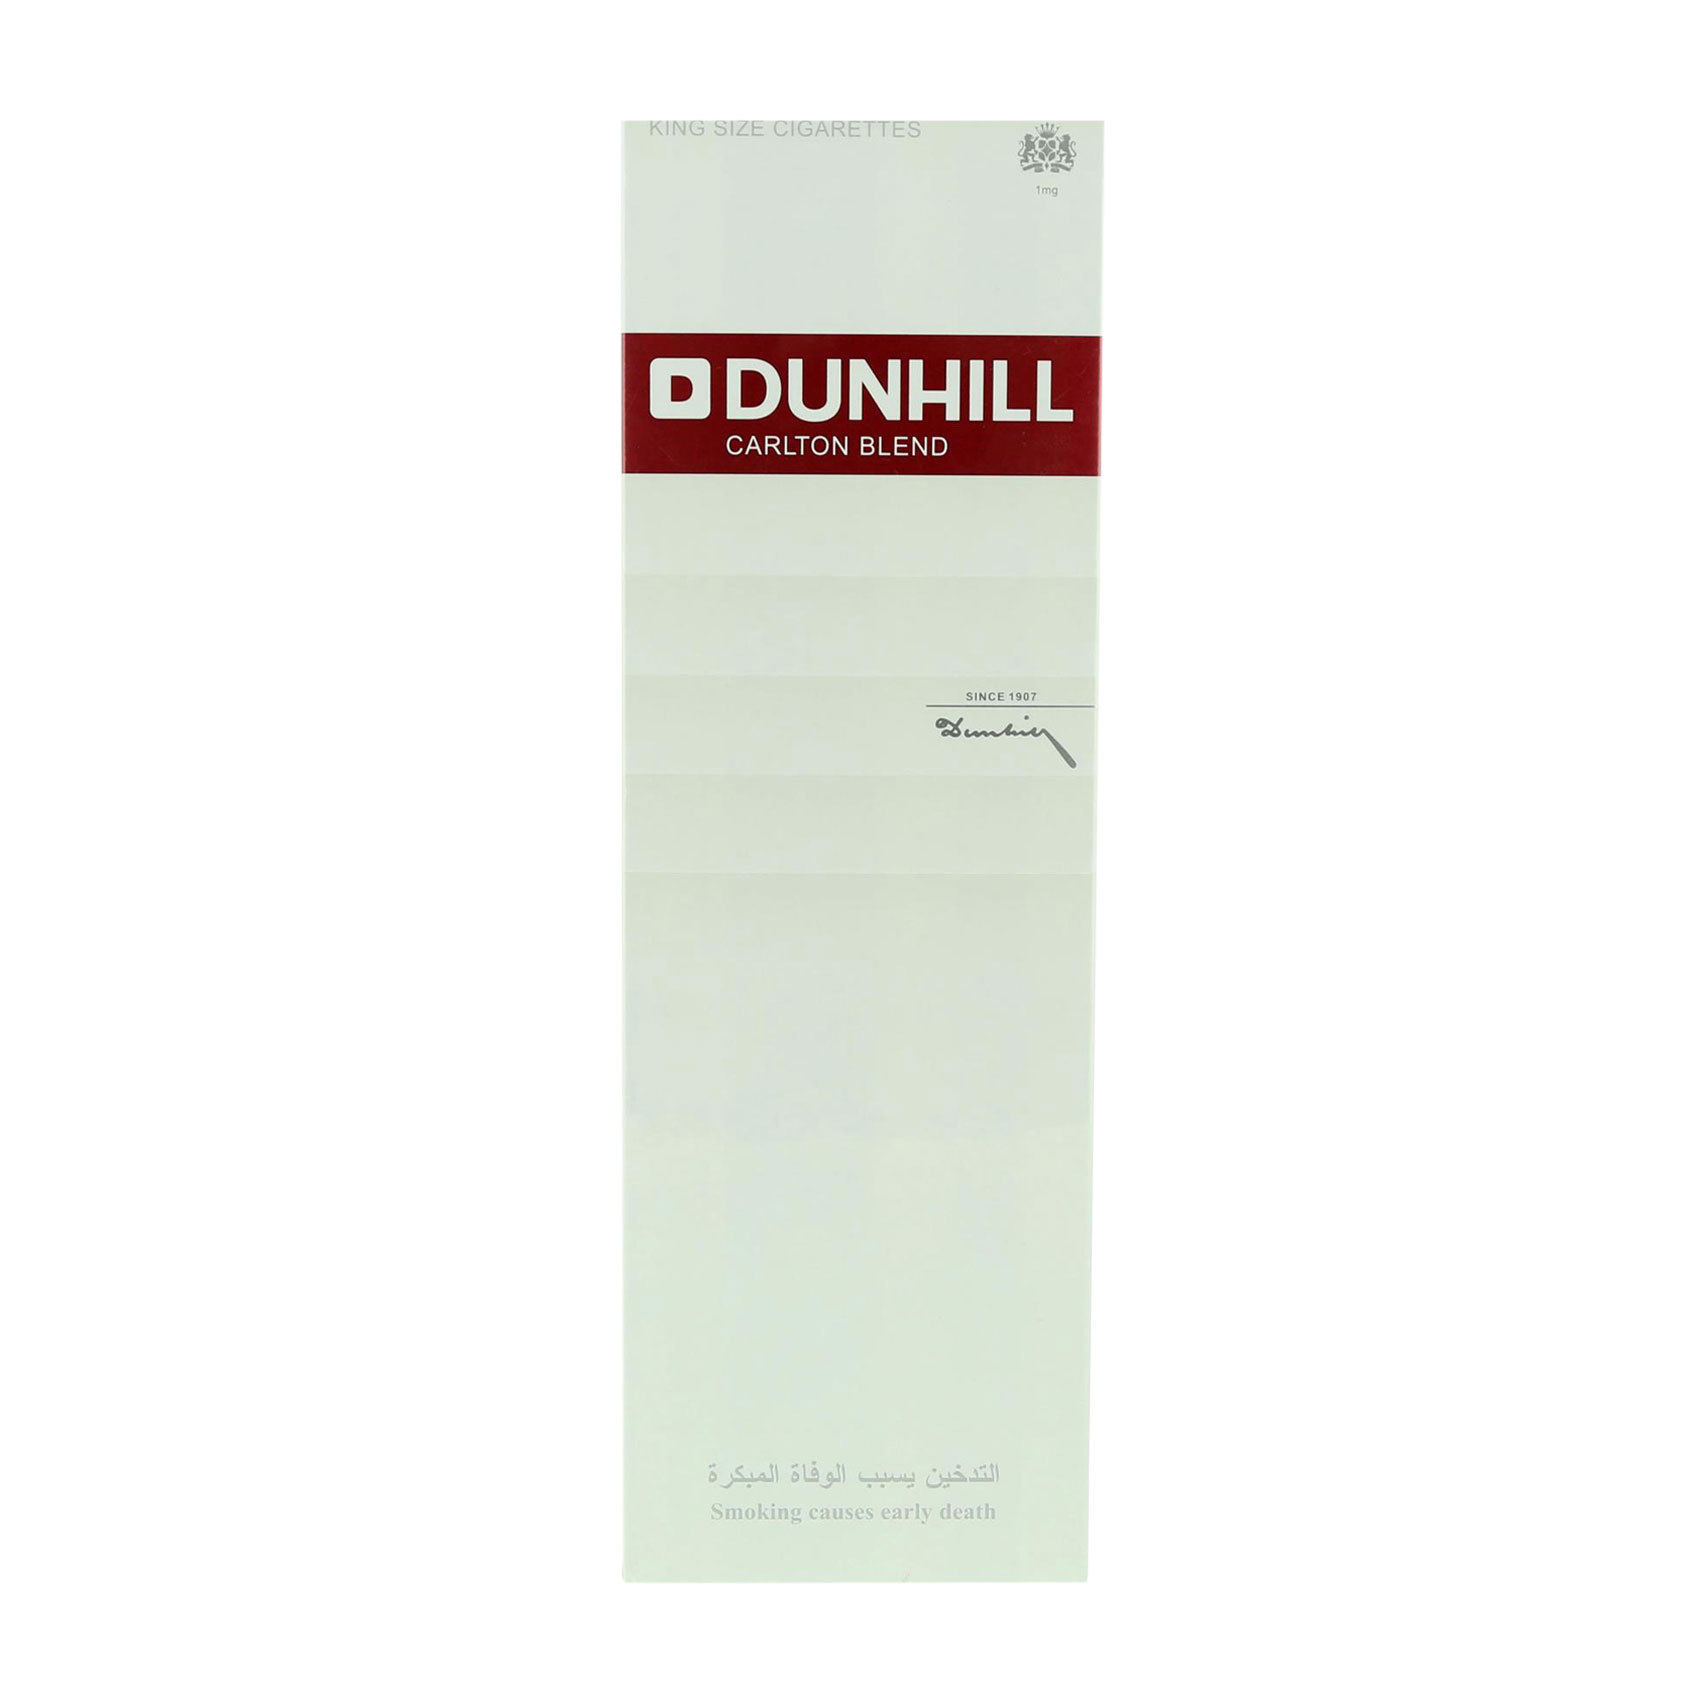 DUNHILL CARLTON BLEND - OUTER X10